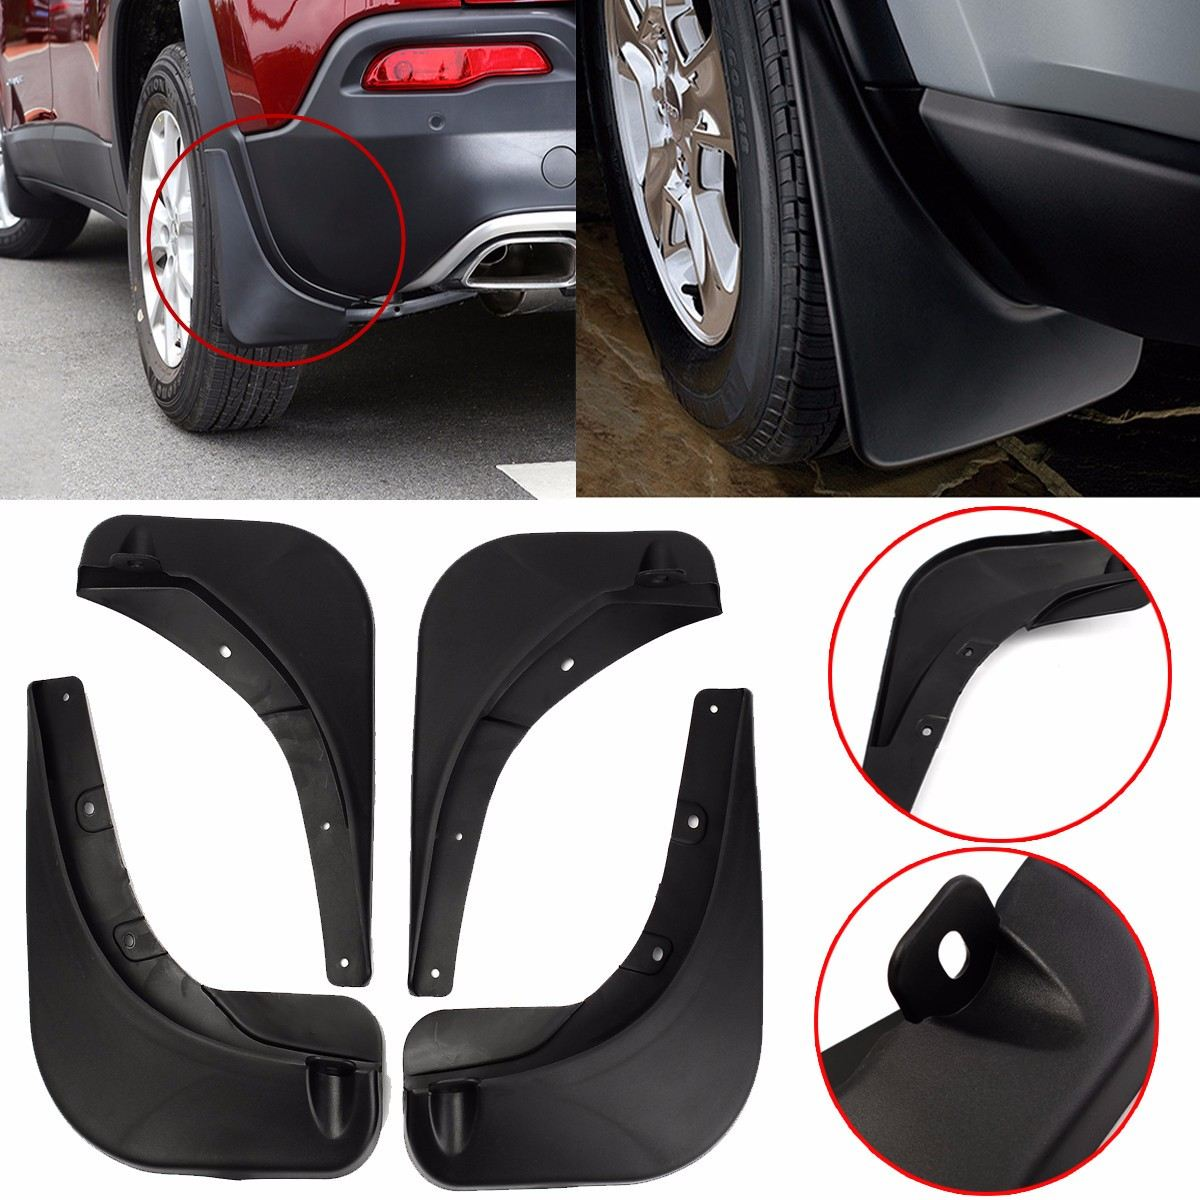 For Jeep Renegade 15-18 Stylish Car Front Rear Mud Flaps Mudguard Guards